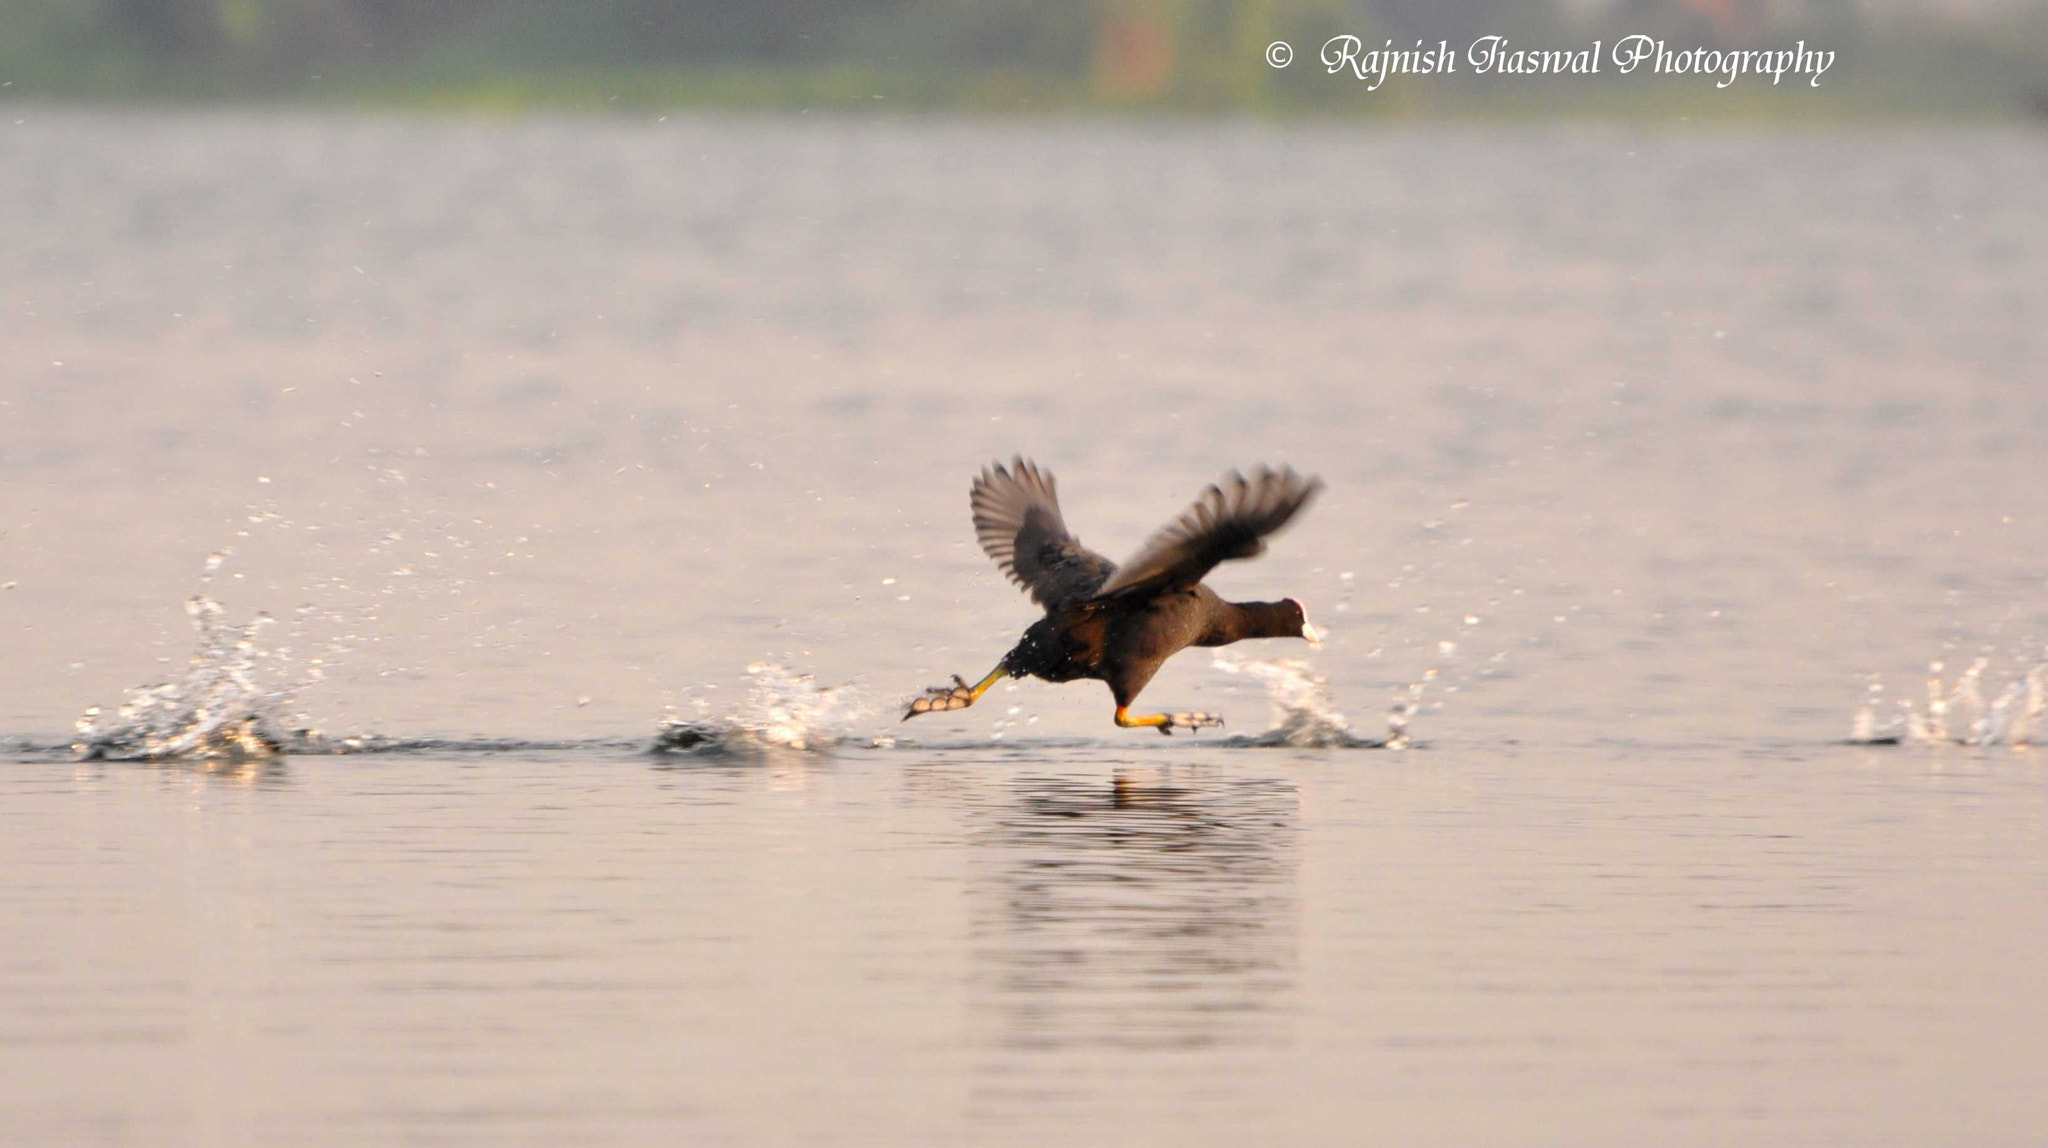 Photograph Running on water by Rajnish Jaiswal on 500px